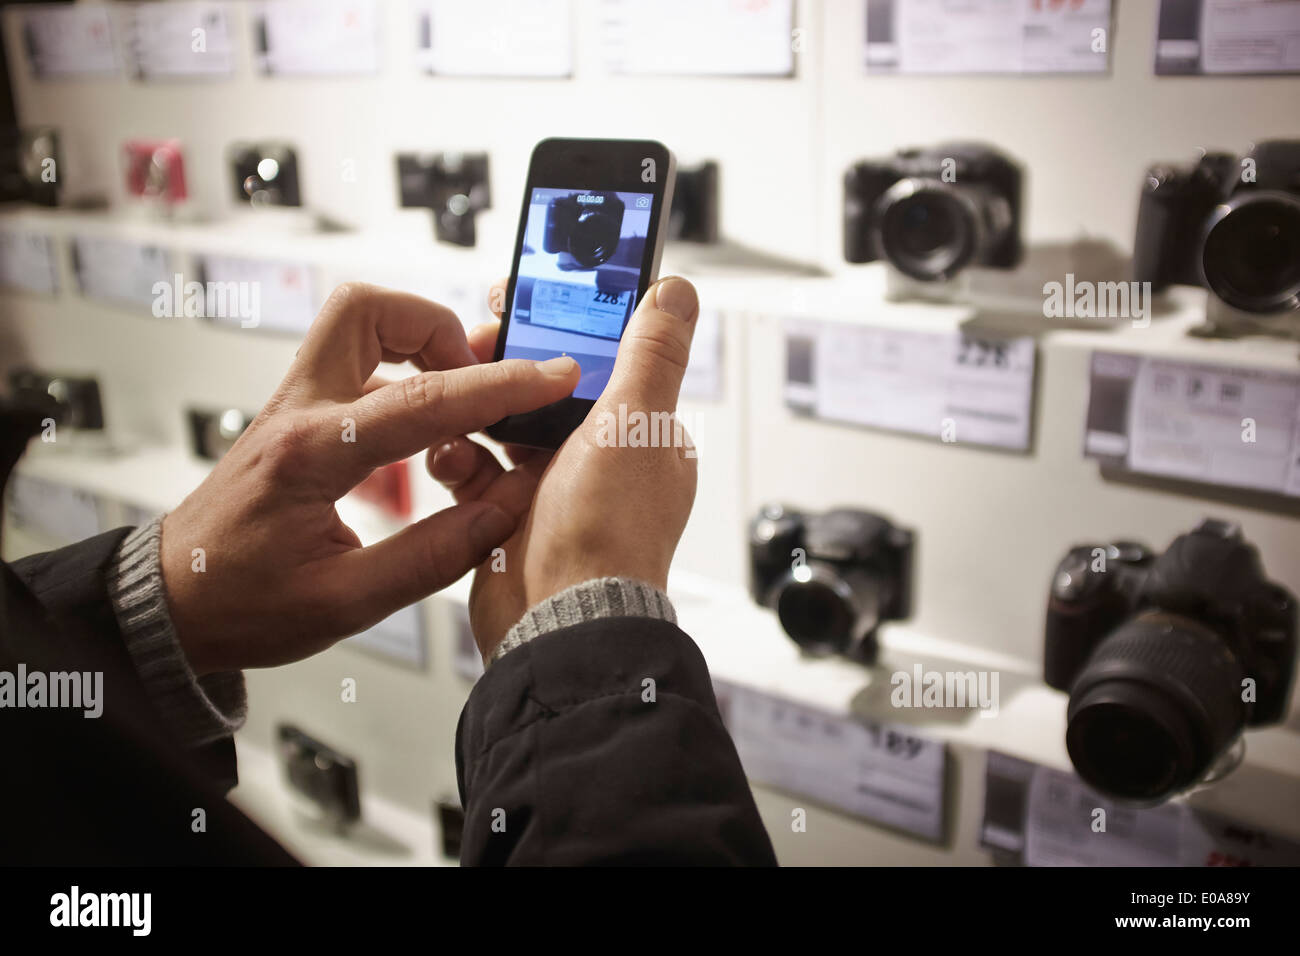 Mid adult man photographing camera's in shop display using smartphone - Stock Image